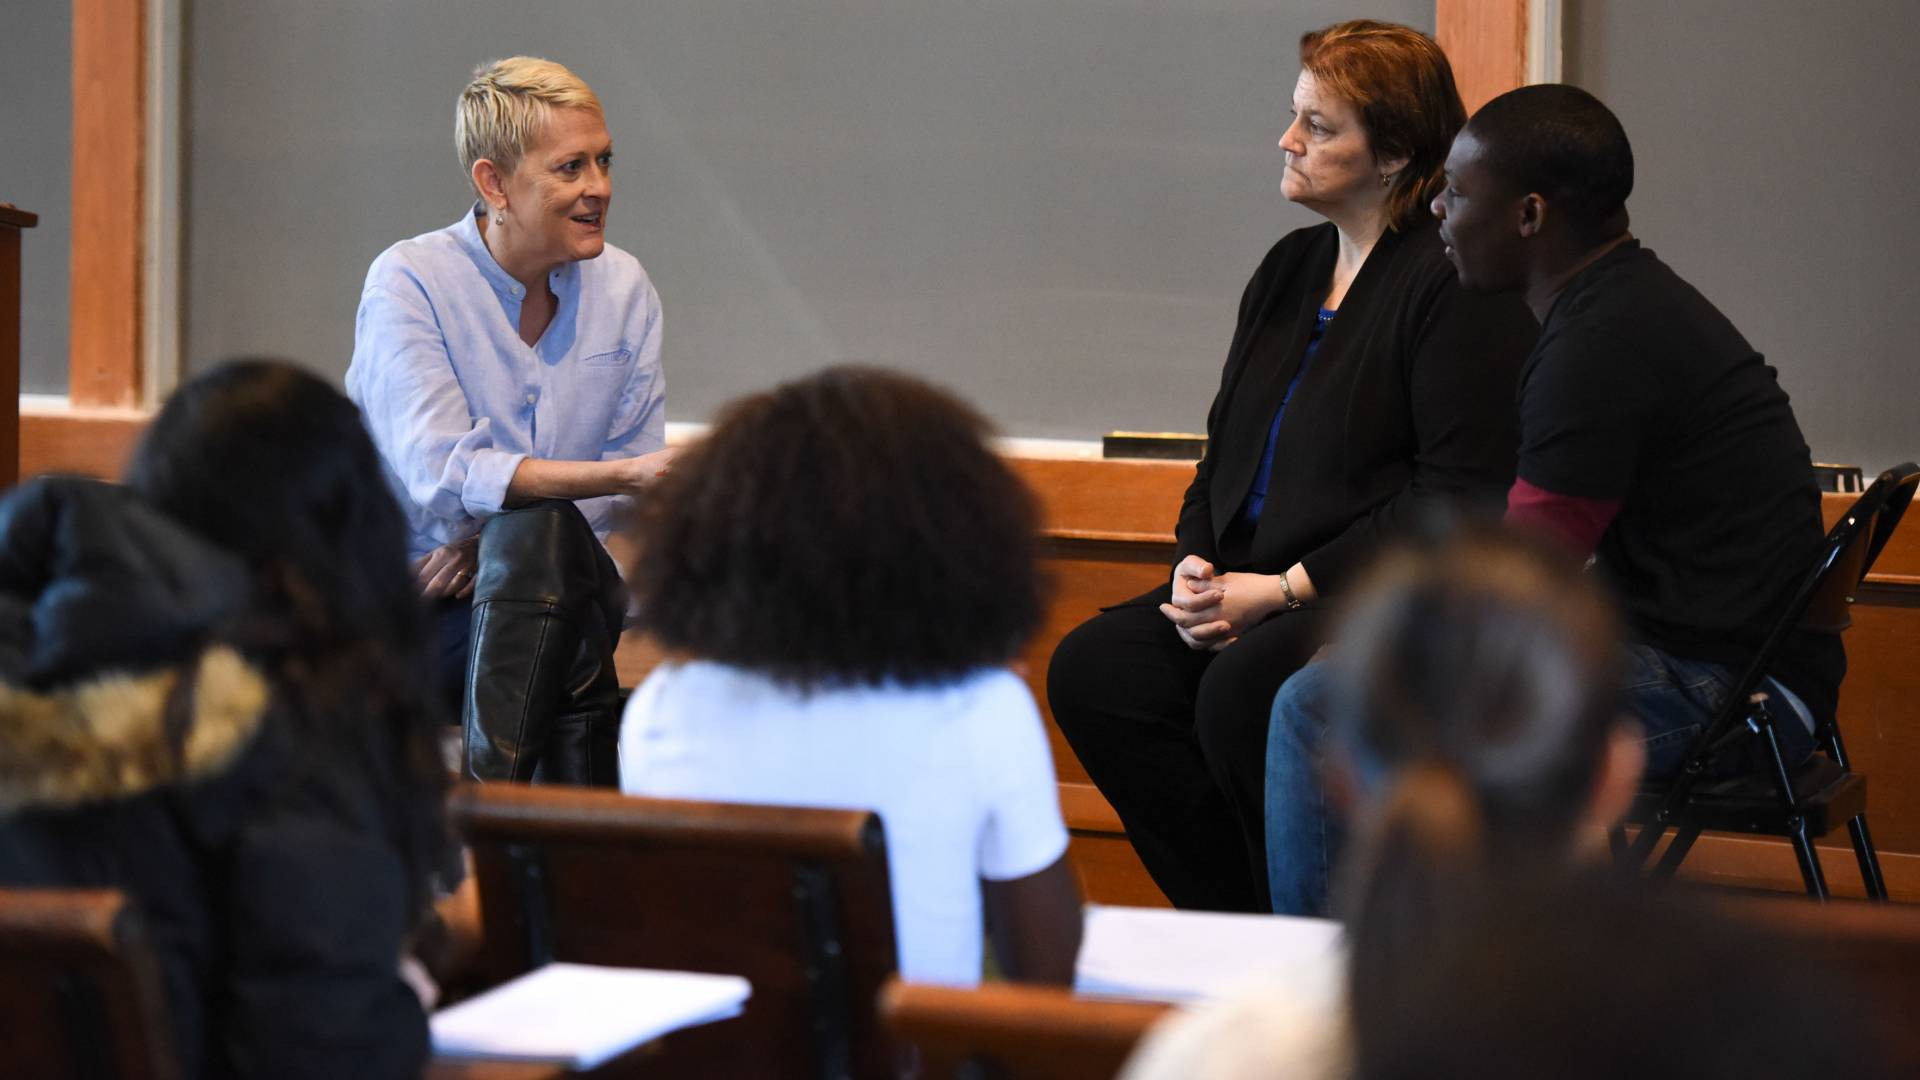 kathryn edin speaking with lorie mcdonough and donnell clark during class